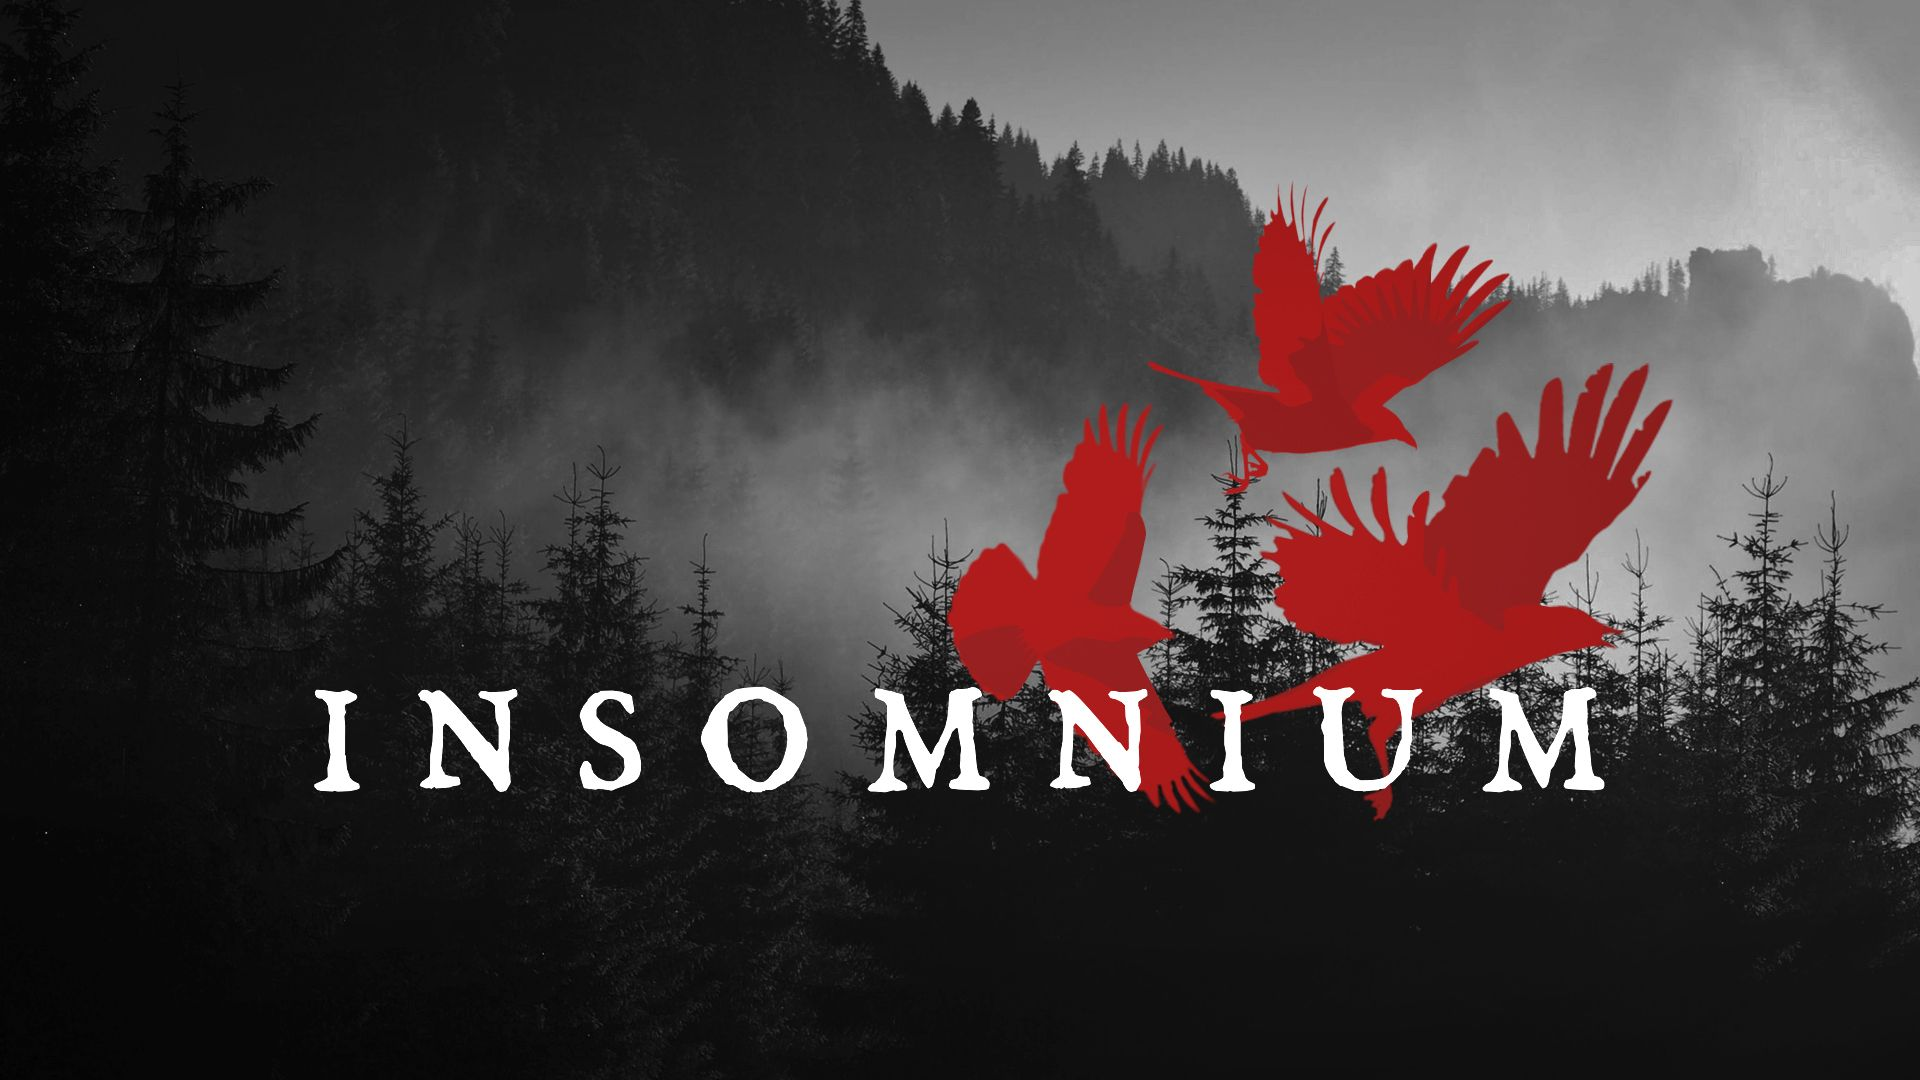 Insomnium [1920x1080] 4k wallpaper for mobile, Wallpaper